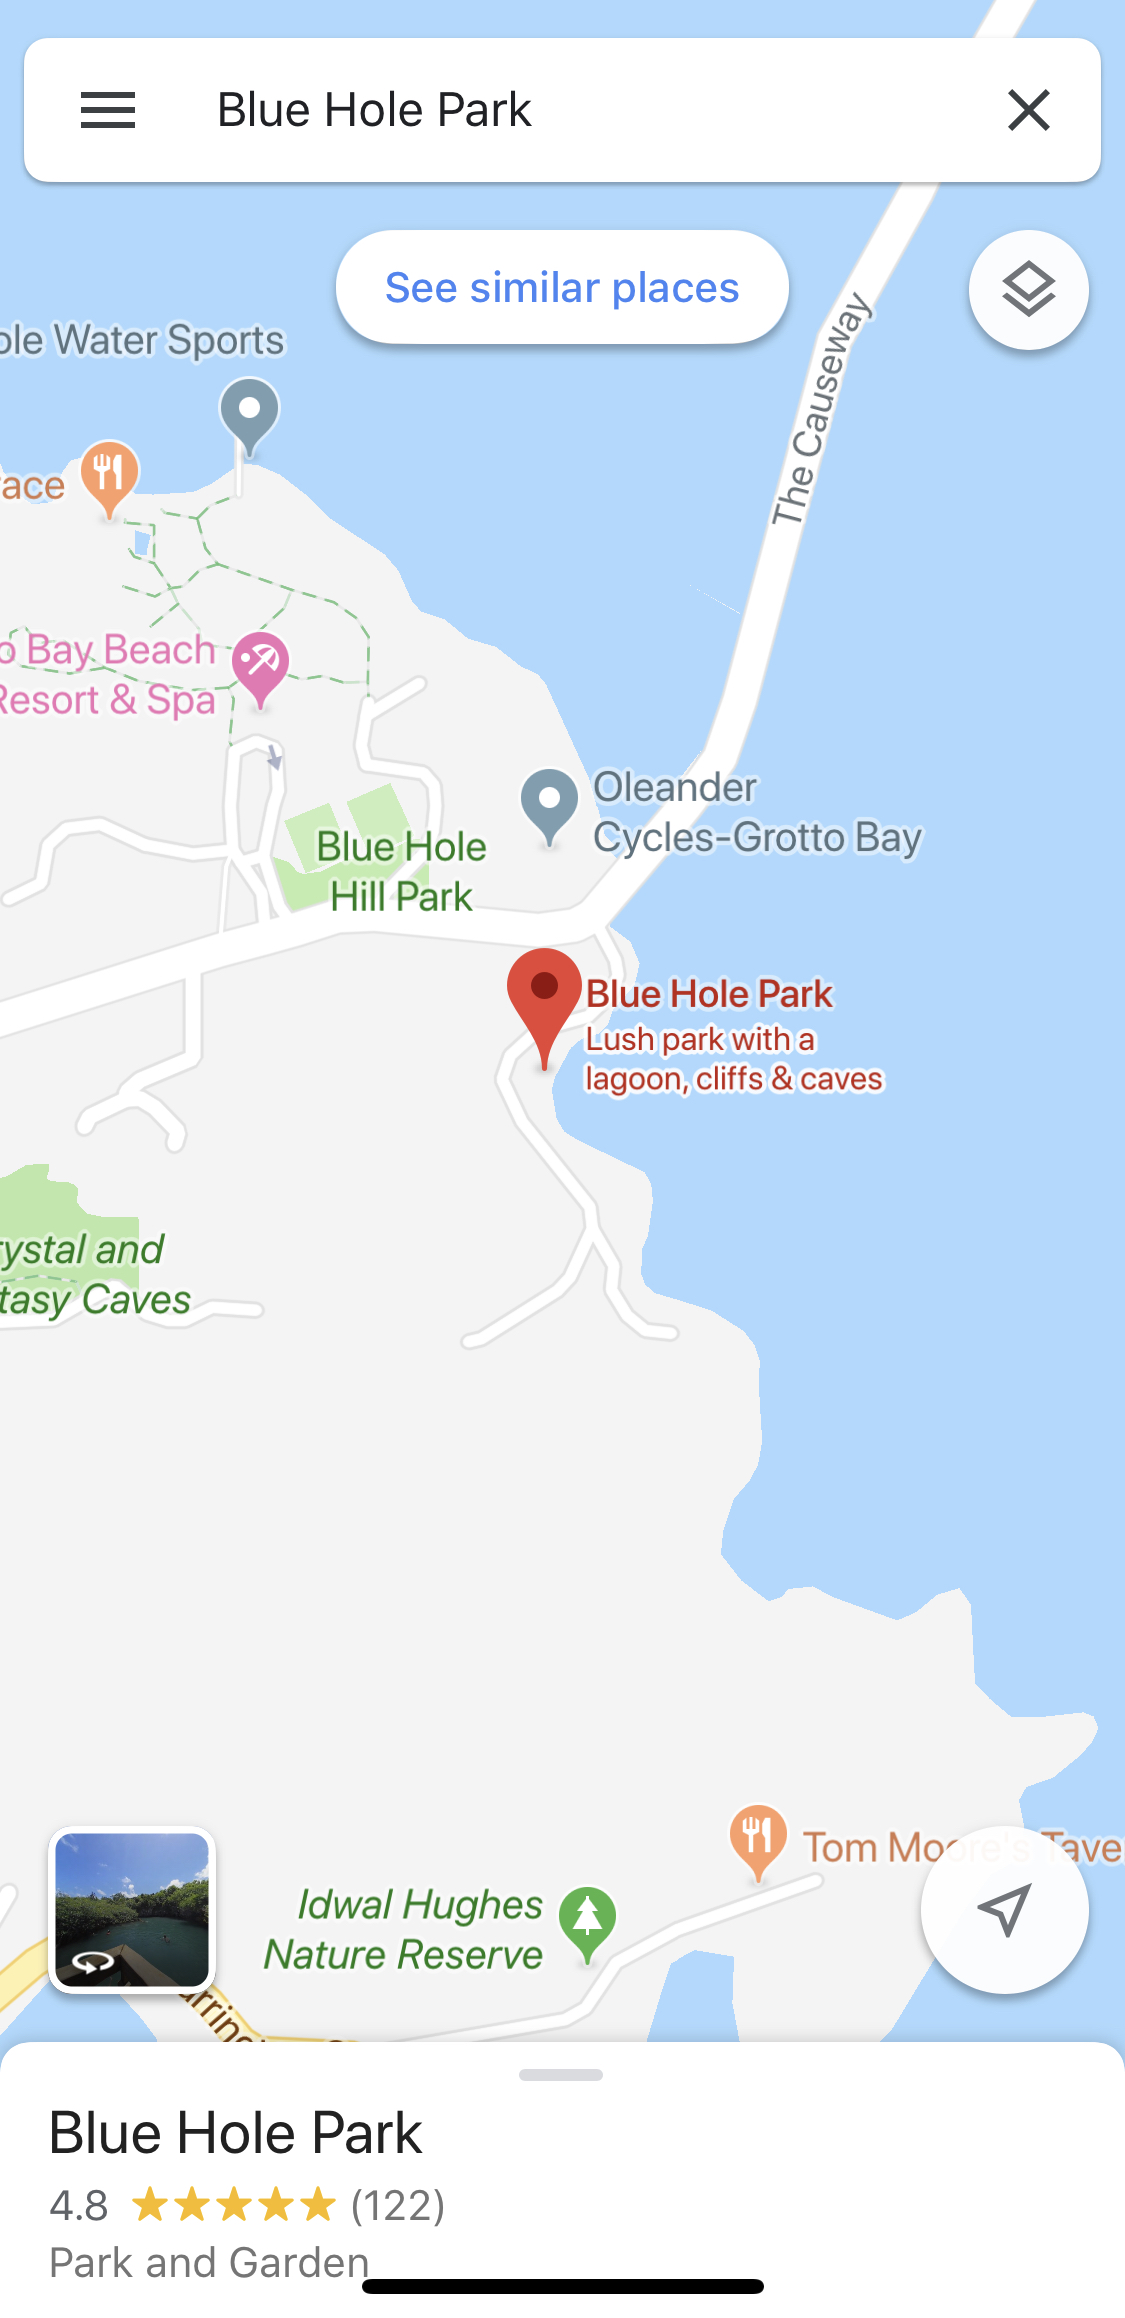 Blue Hole Park - This lagoon is on google maps, however it's not as close to the road as it looks on the map. You need to park by the road and walk through the wooded area, past wonderful mangroves to the blue hole. Basically keep walking until you get there!